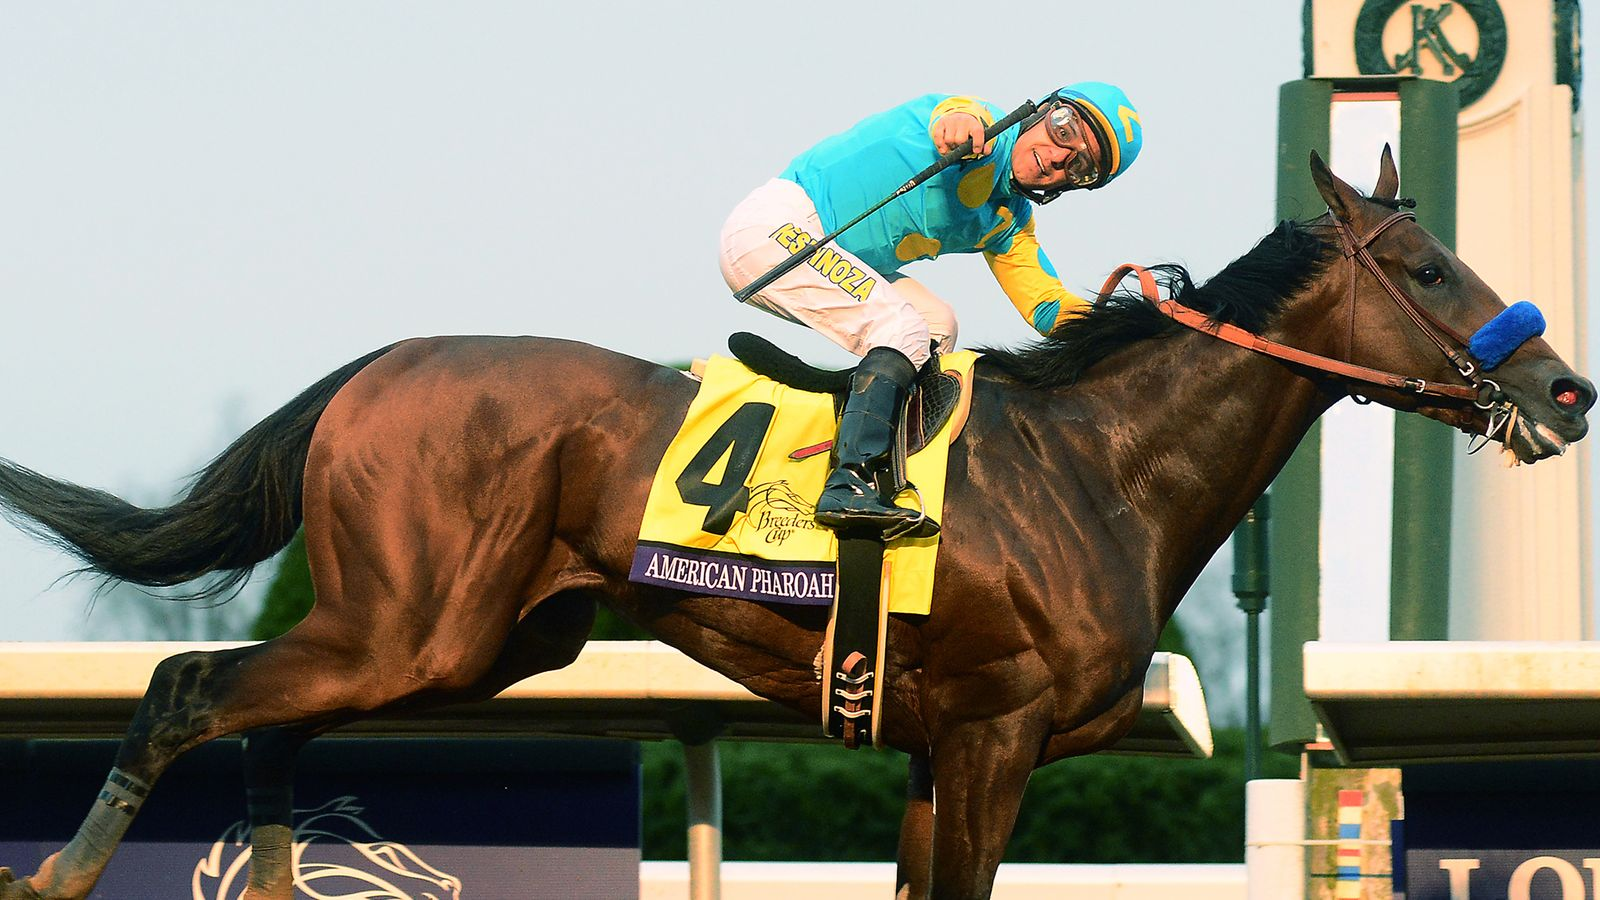 American Pharoah Has Been Named World S Best Racehorse For 2015 Racing News Sky Sports